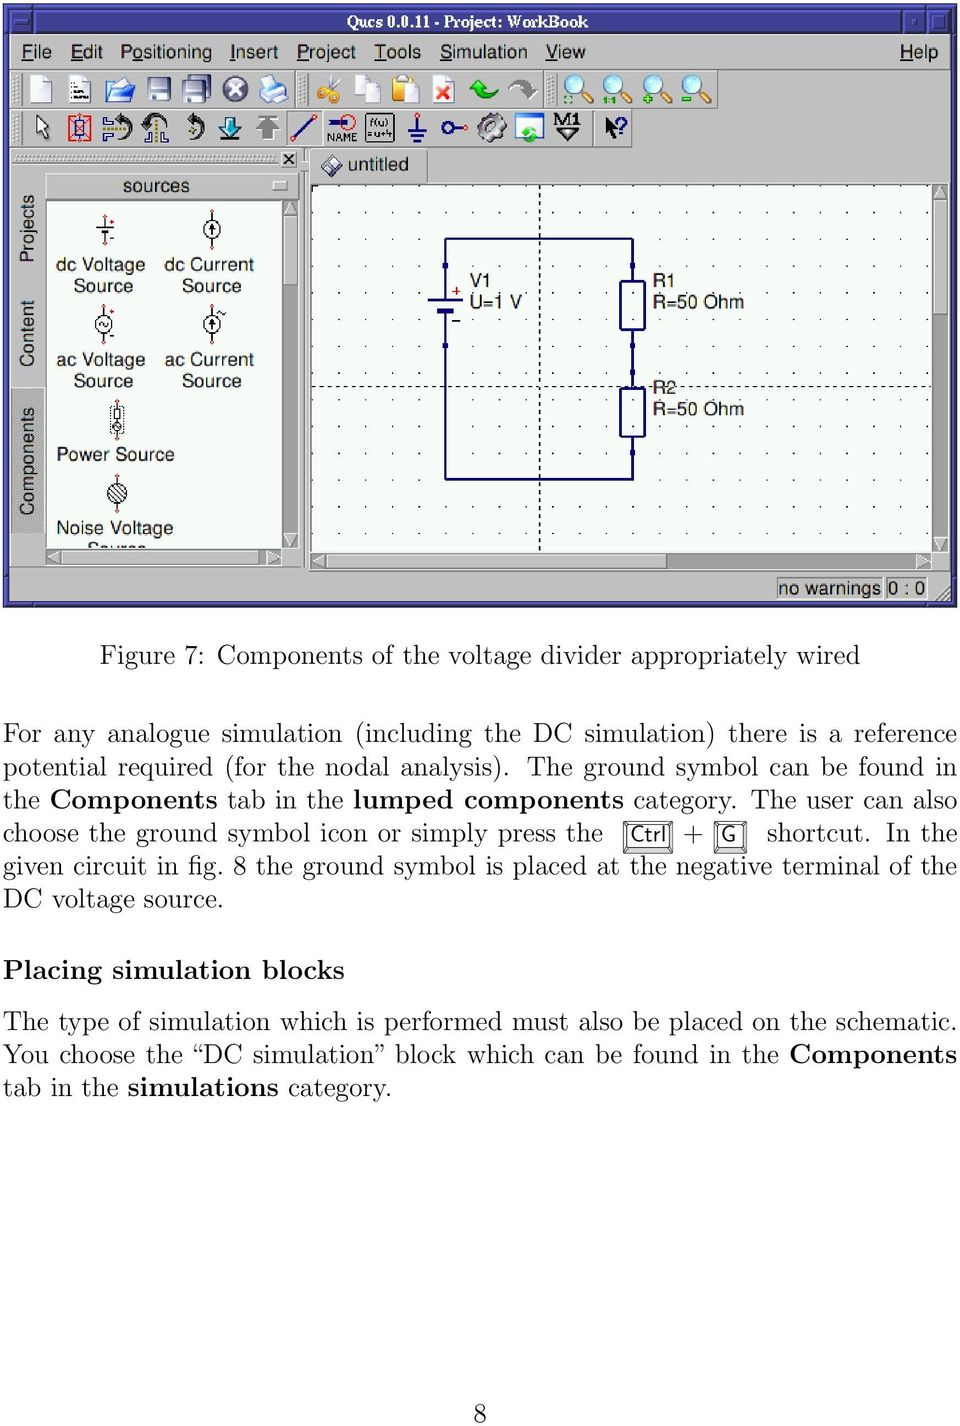 Qucs A Tutorial Getting Started With Stefan Jahn Juan Carlos Ac Current Source Circuit The User Can Also Choose Ground Symbol Icon Or Simply Press Ctrl G